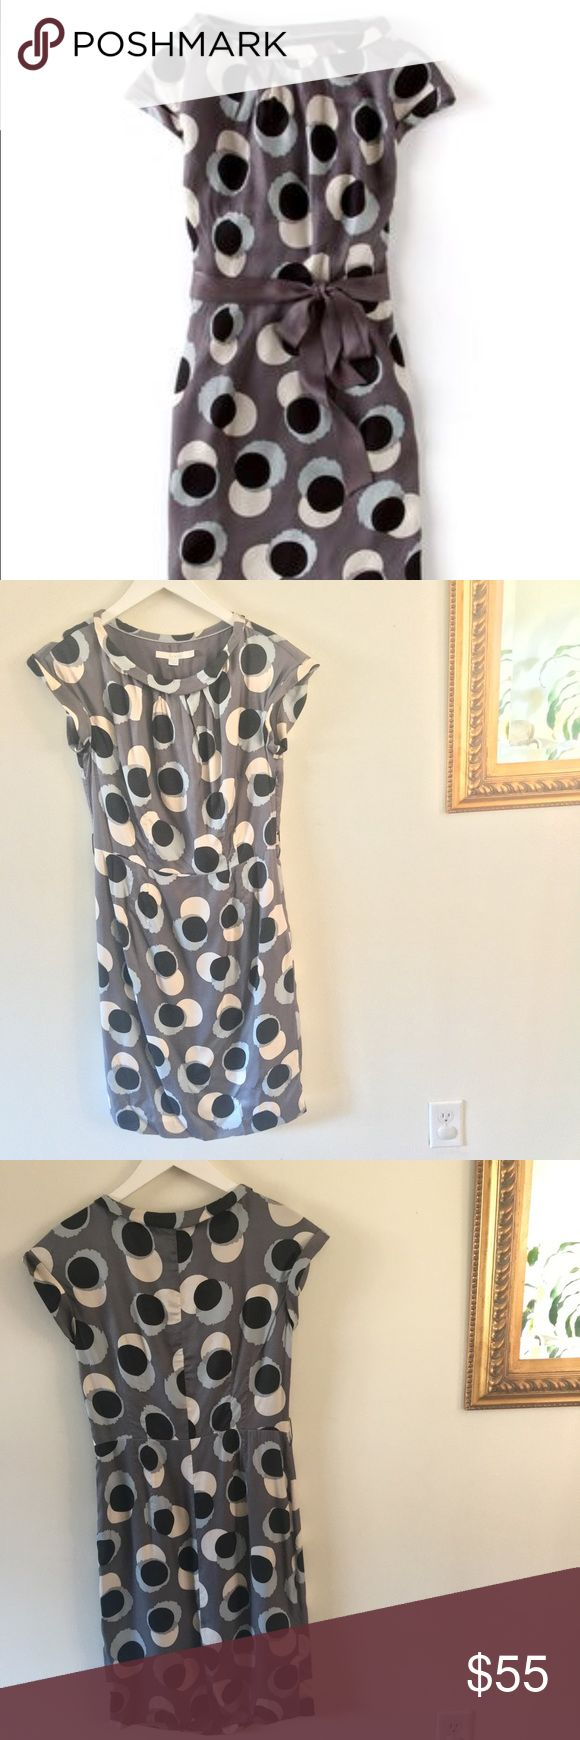 Printed Smart Day Dress | Biden Grey and blue circle print smart day dress by Boden. Last photo shown to showcase silhouette (red color unavailable). Satin belt is missing but can be easily replaced (or used without). Great roll neckline and sleeves. Great condition. No stains or tears otherwise. Boden Dresses